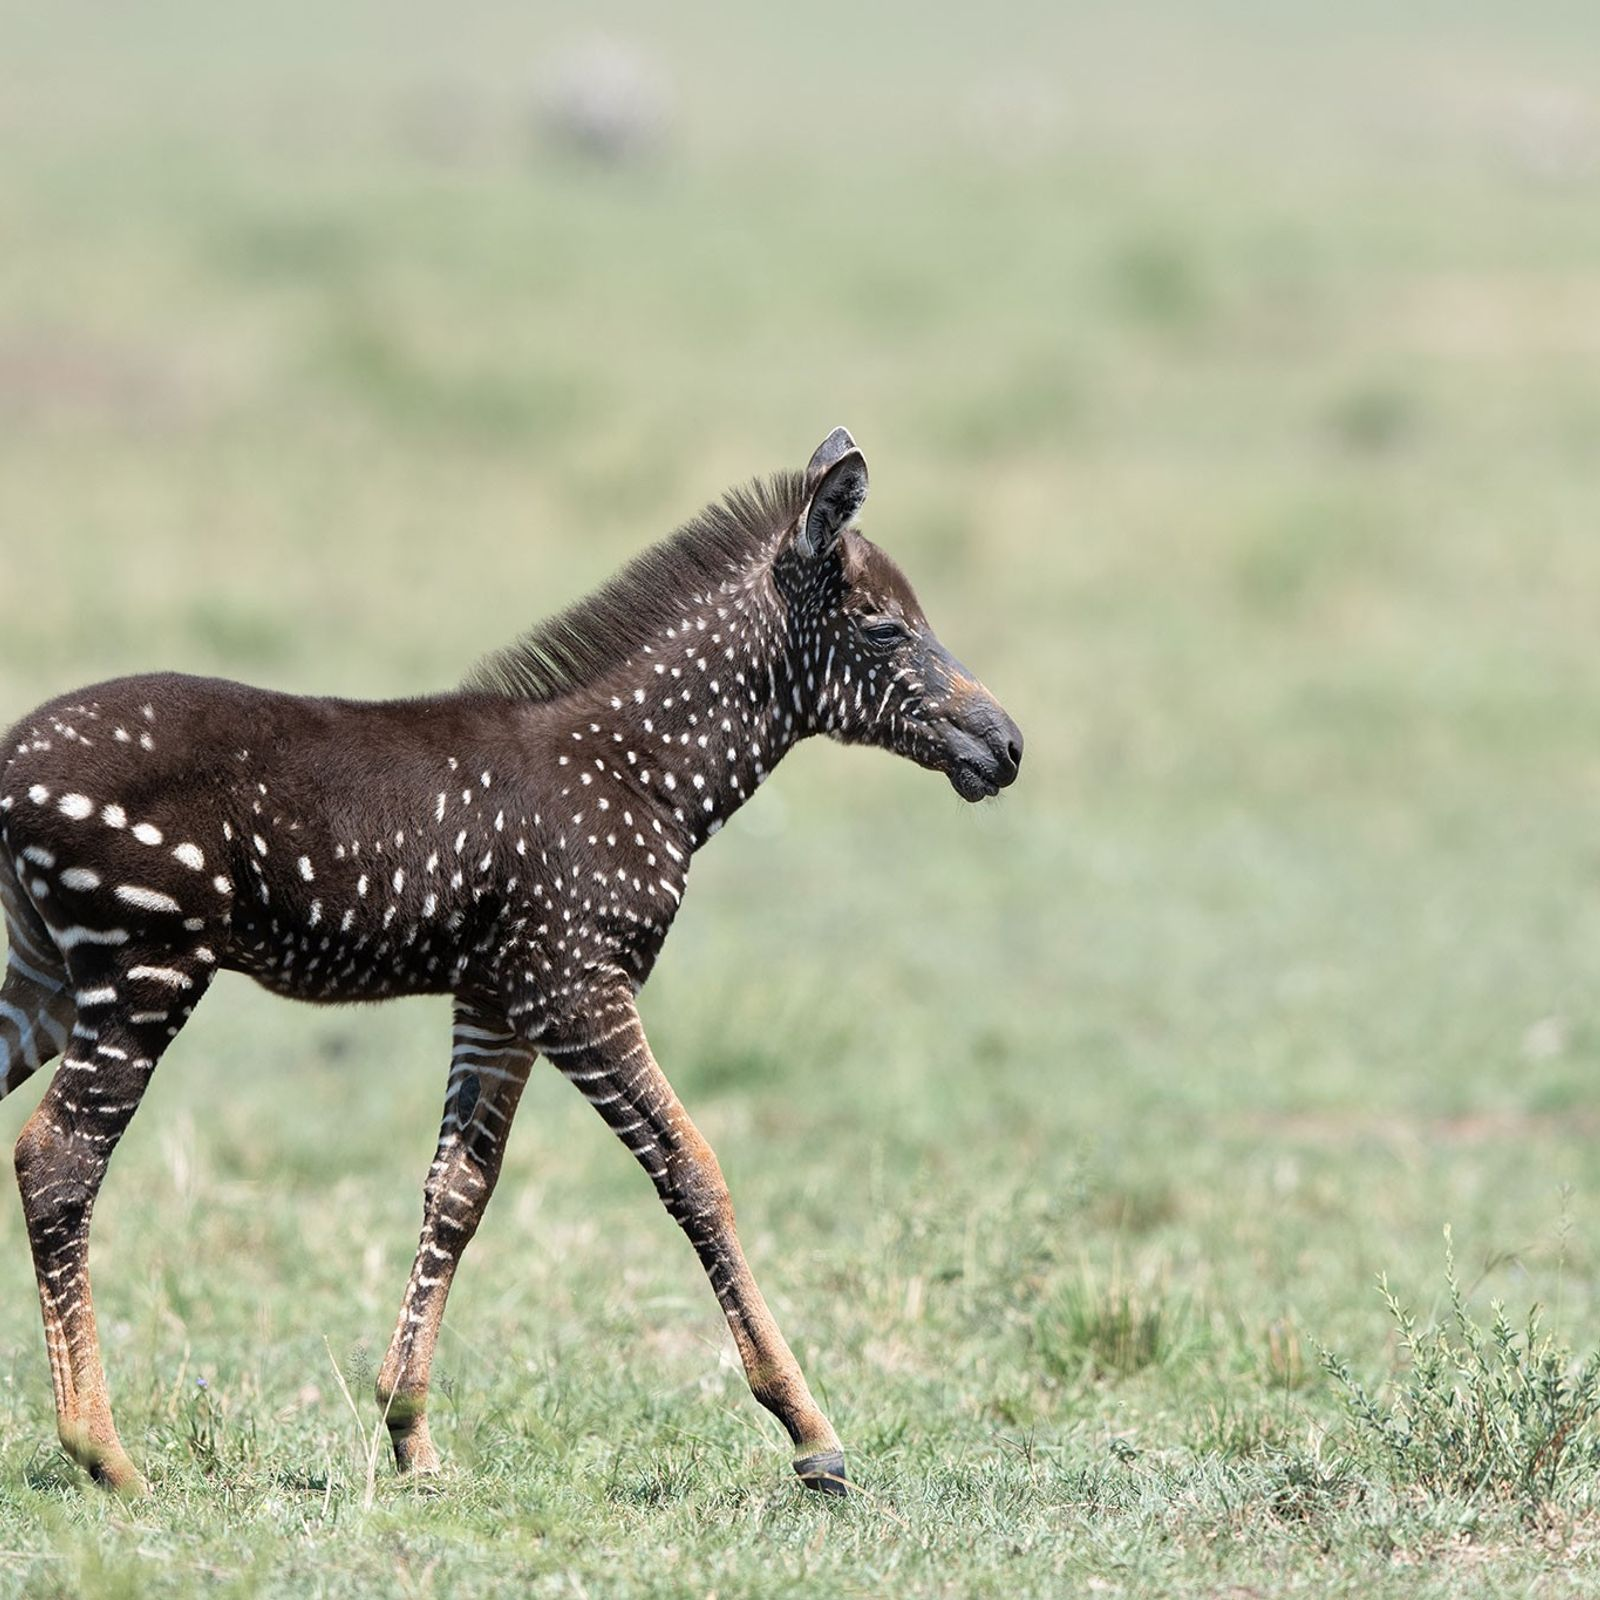 Tira, the spotted zebra foal, may be more suspectible to biting flies without the zebra's trademark ...